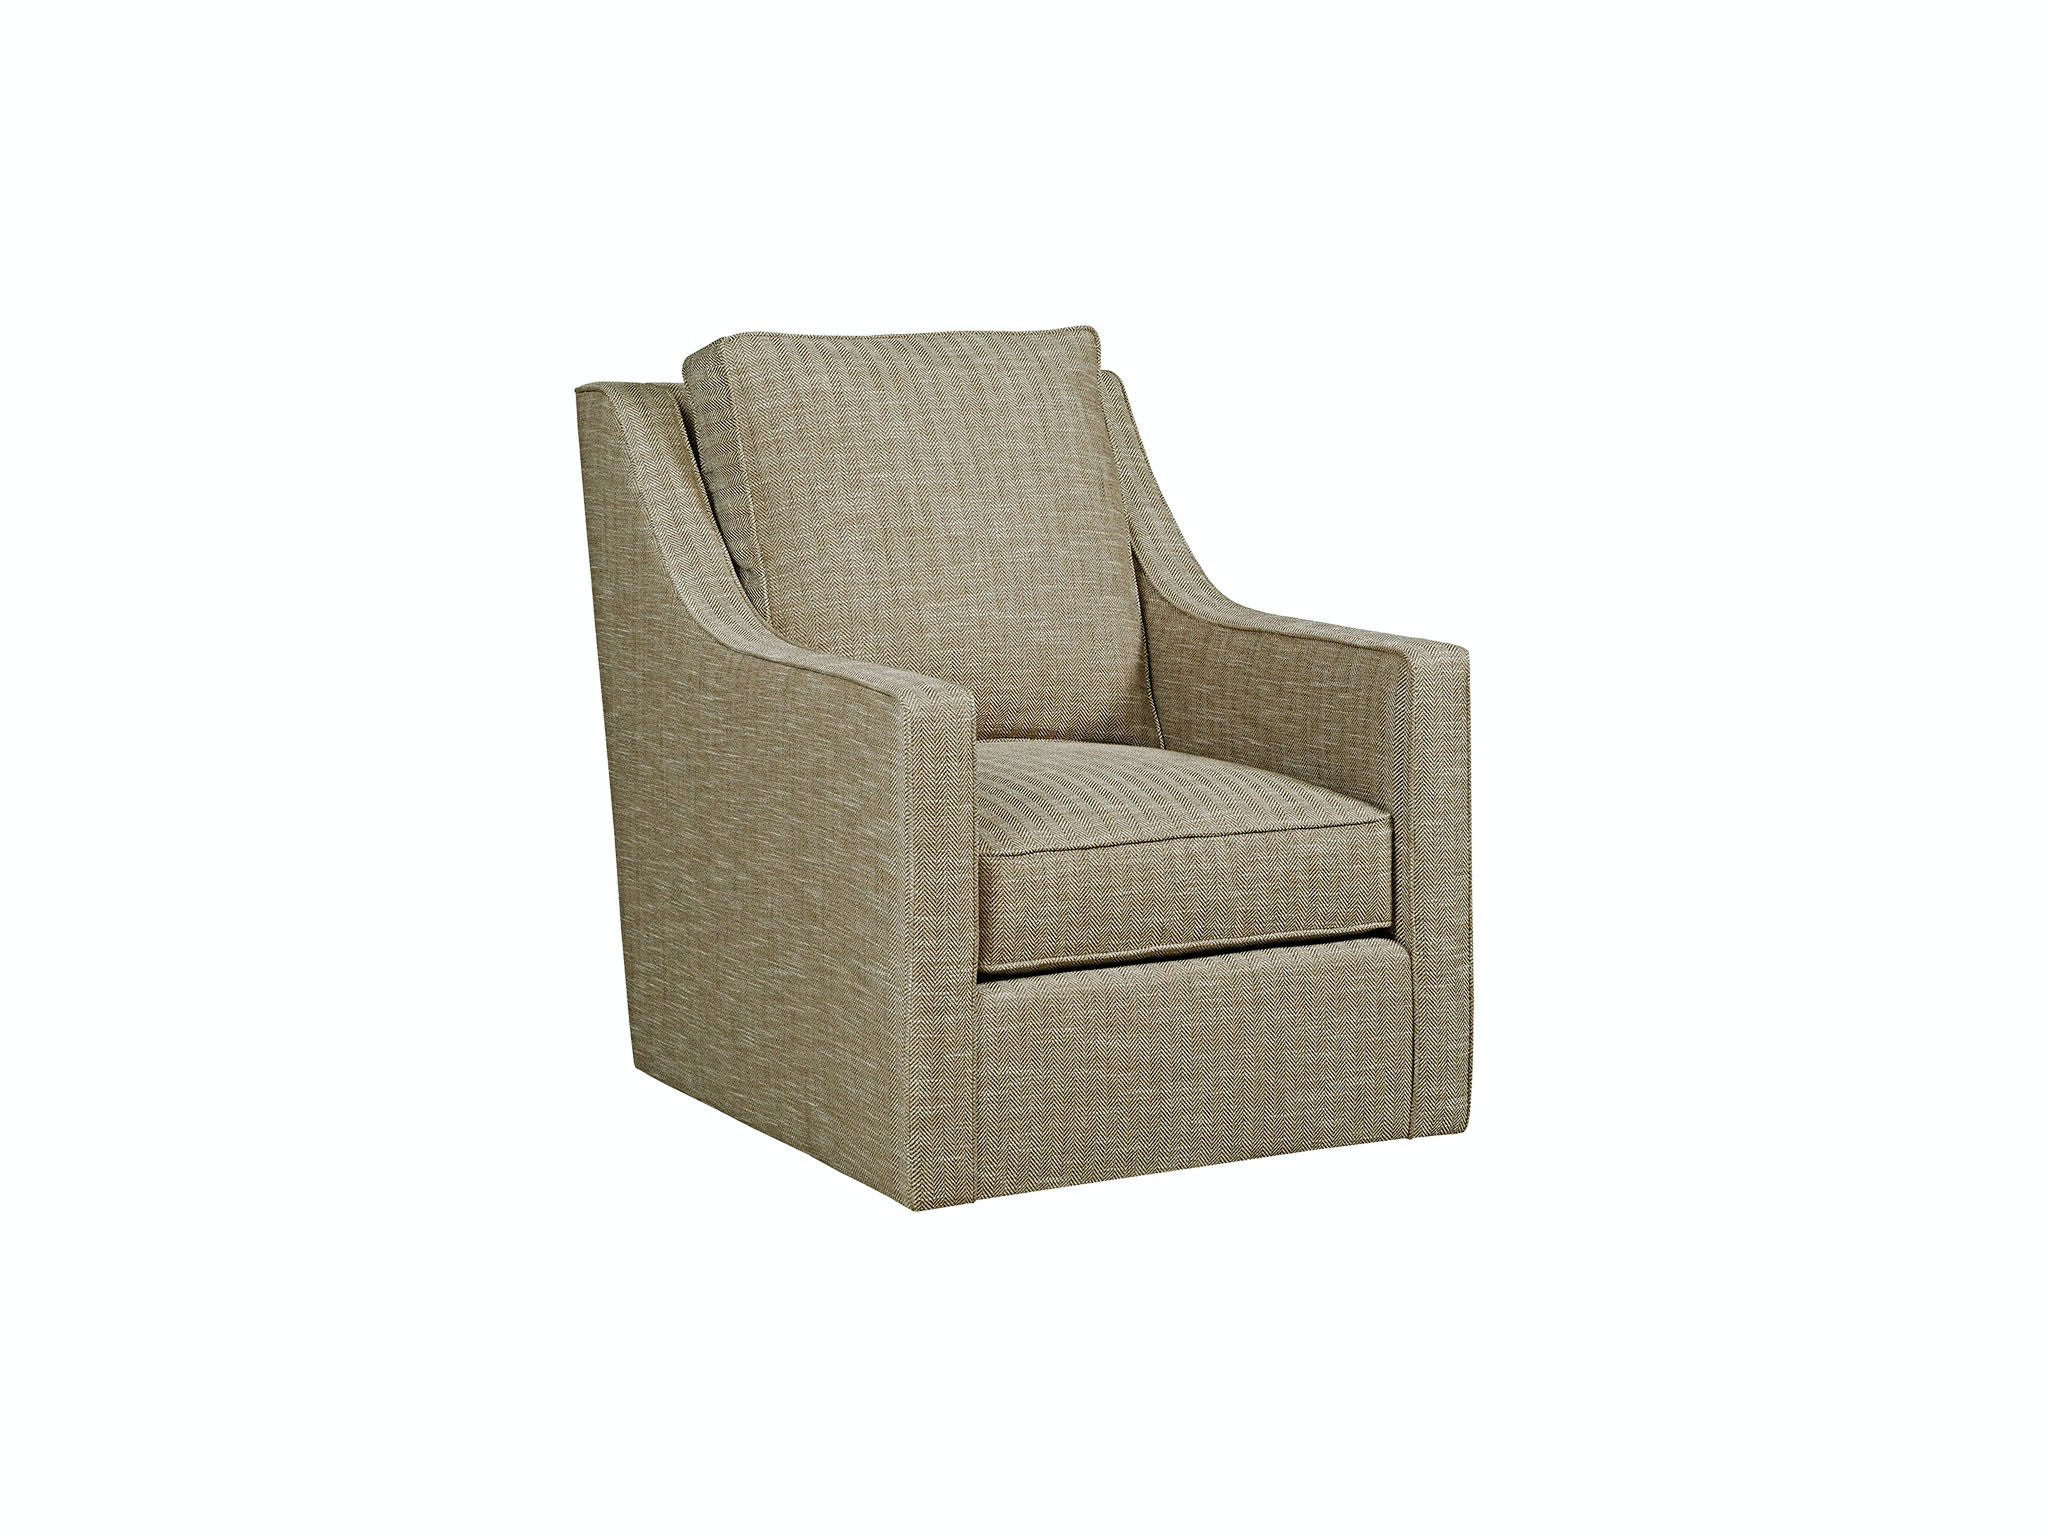 Beautiful Kincaid Furniture Bradley Swivel Glider Chair 010 02